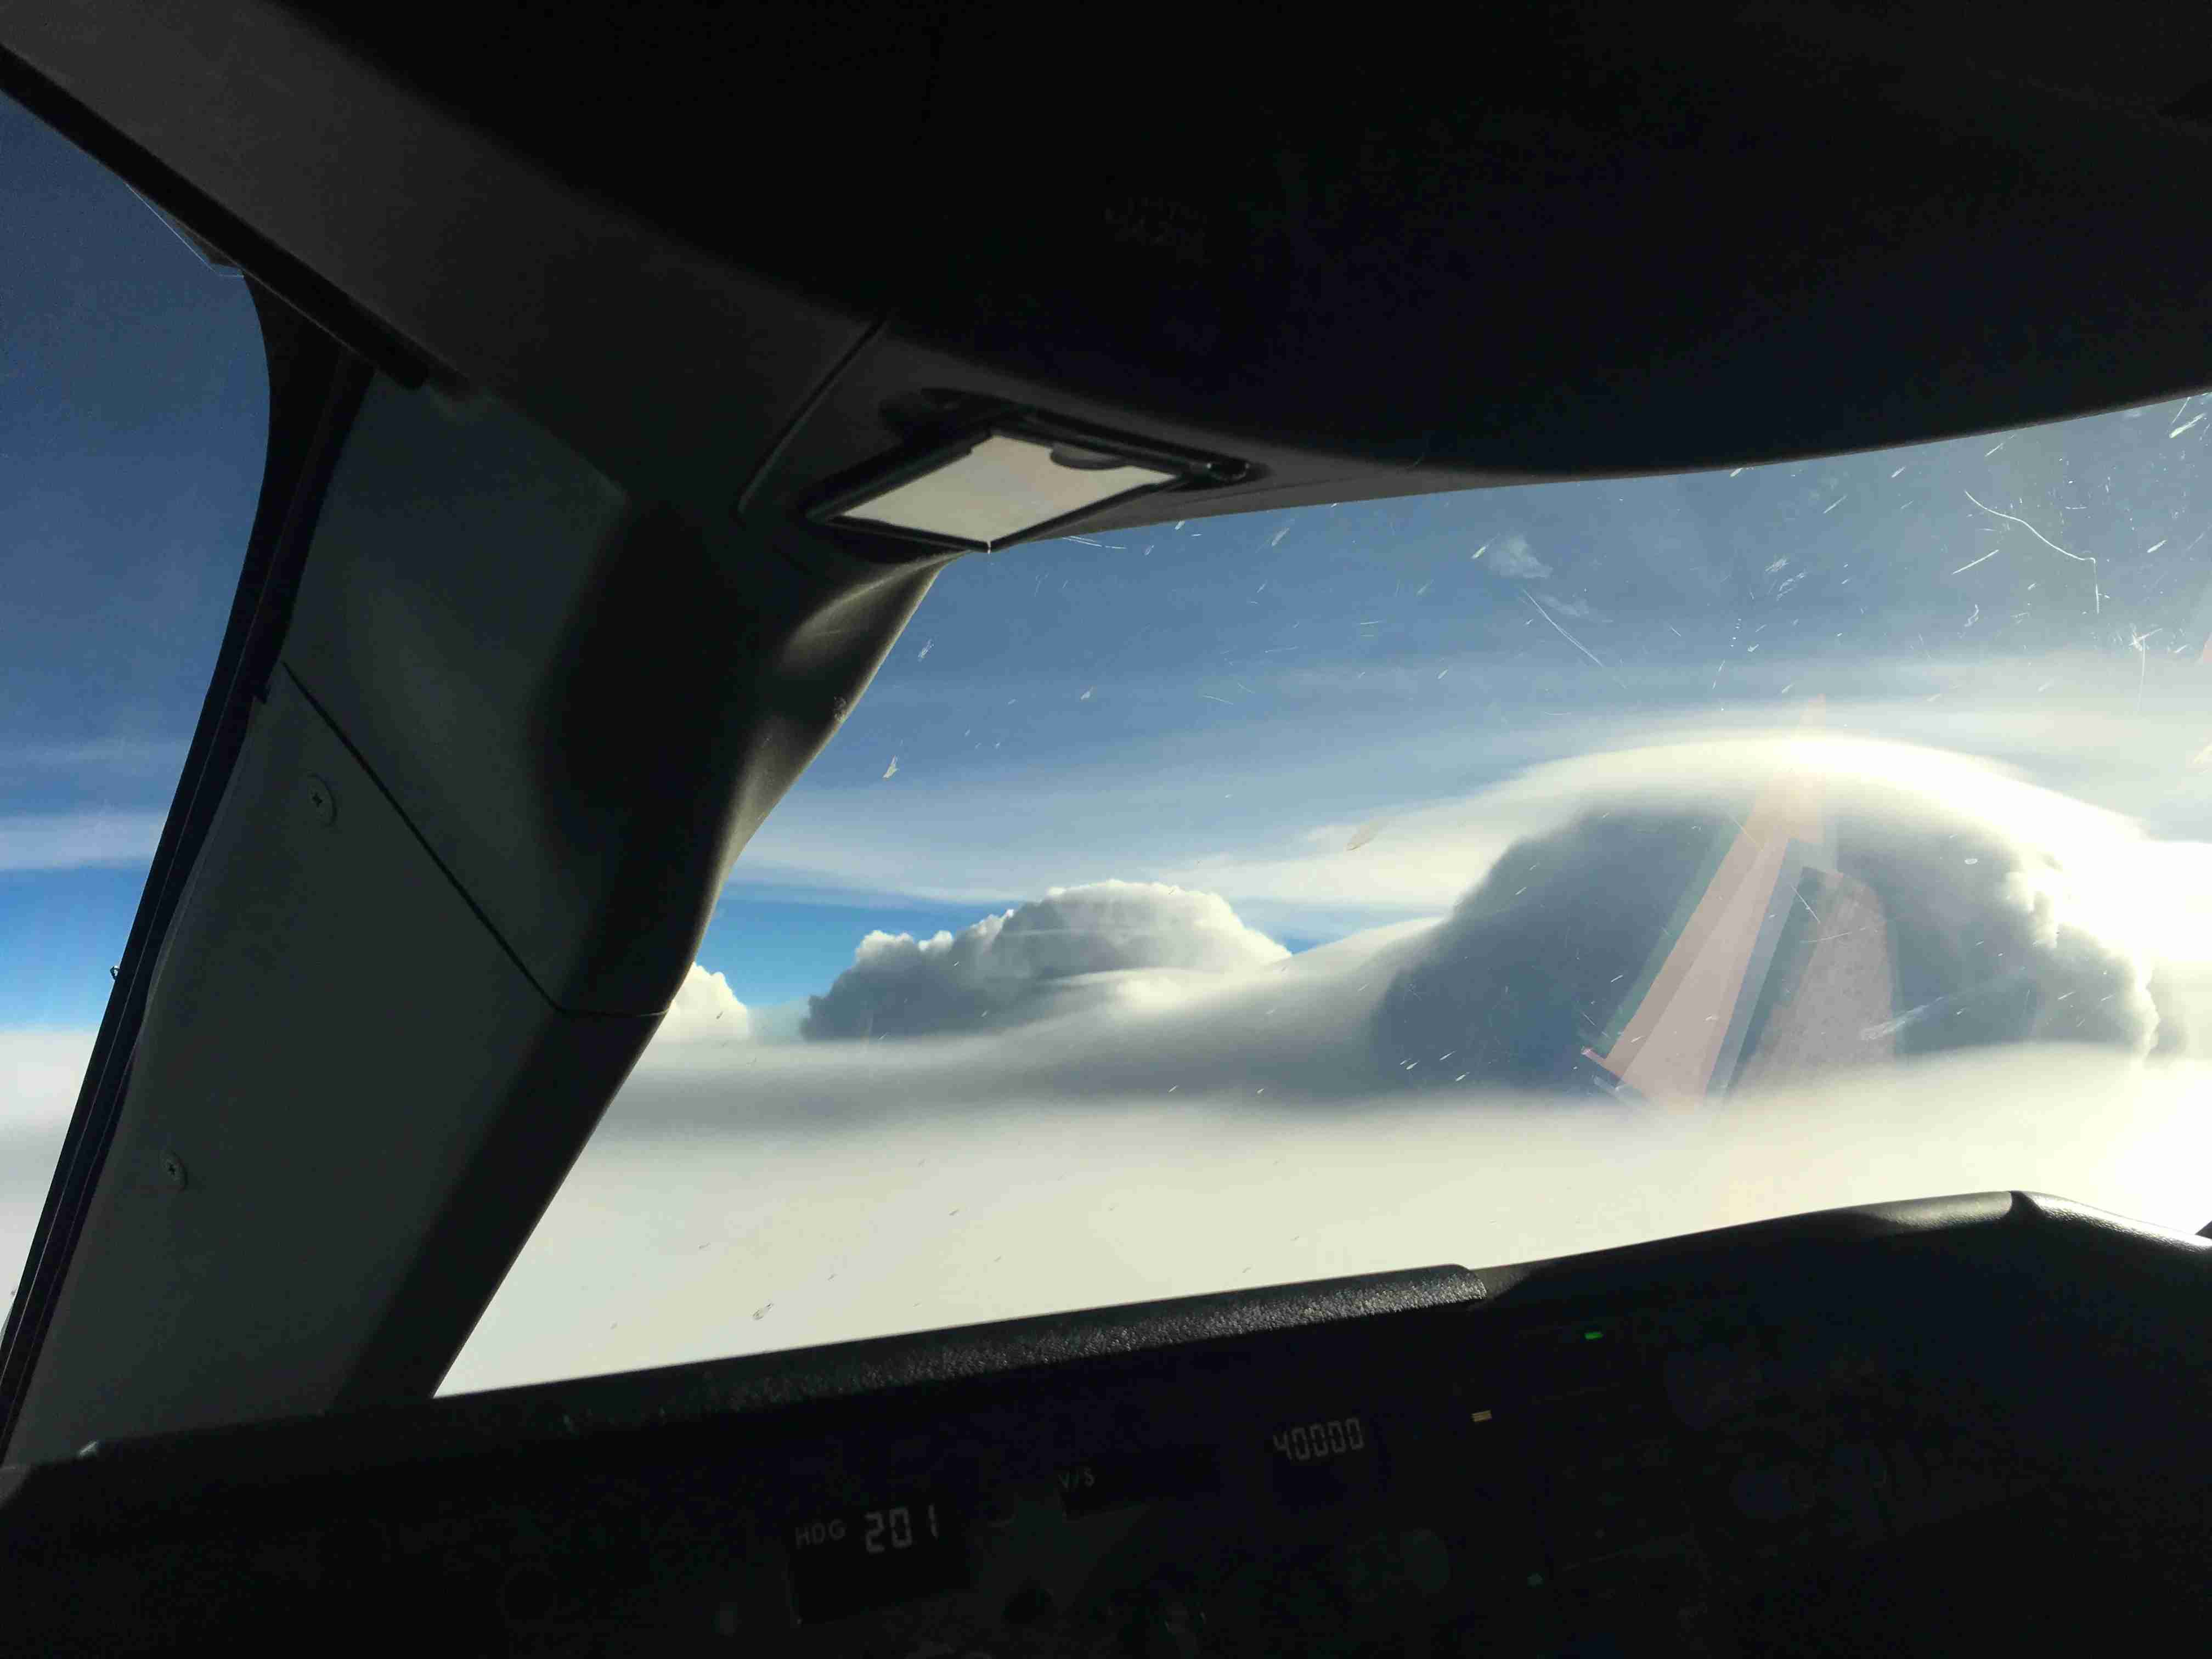 In the tropics, where the tropopause is much higher, these storms can grow well over 40,000ft.